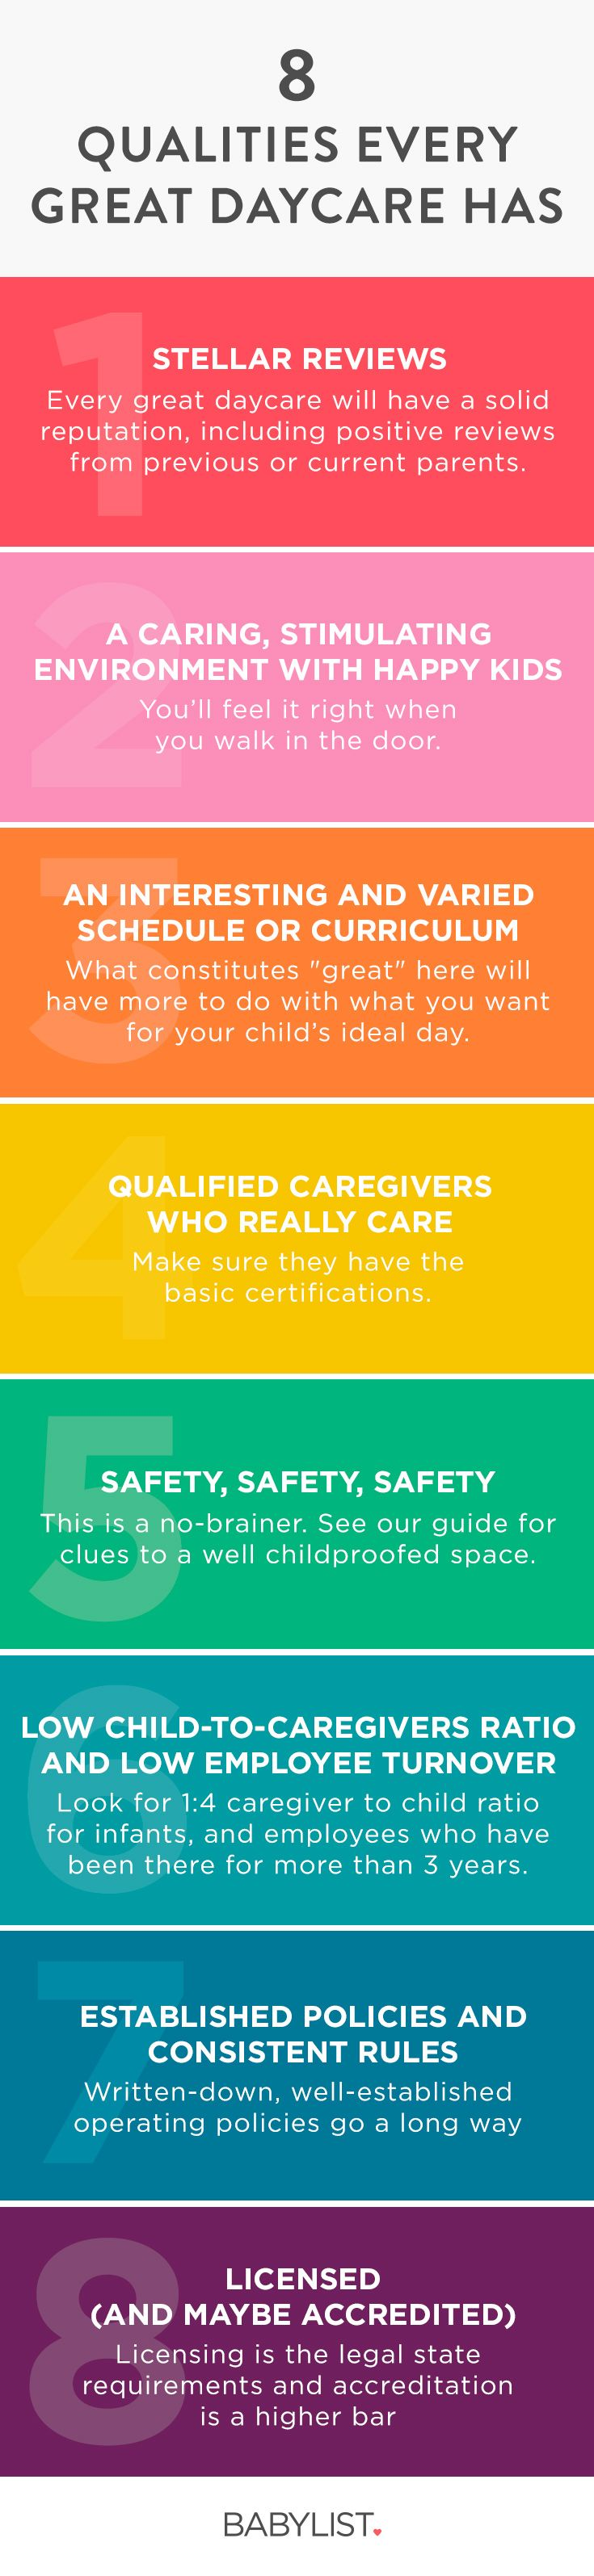 8 Important Qualities of a Great Daycare